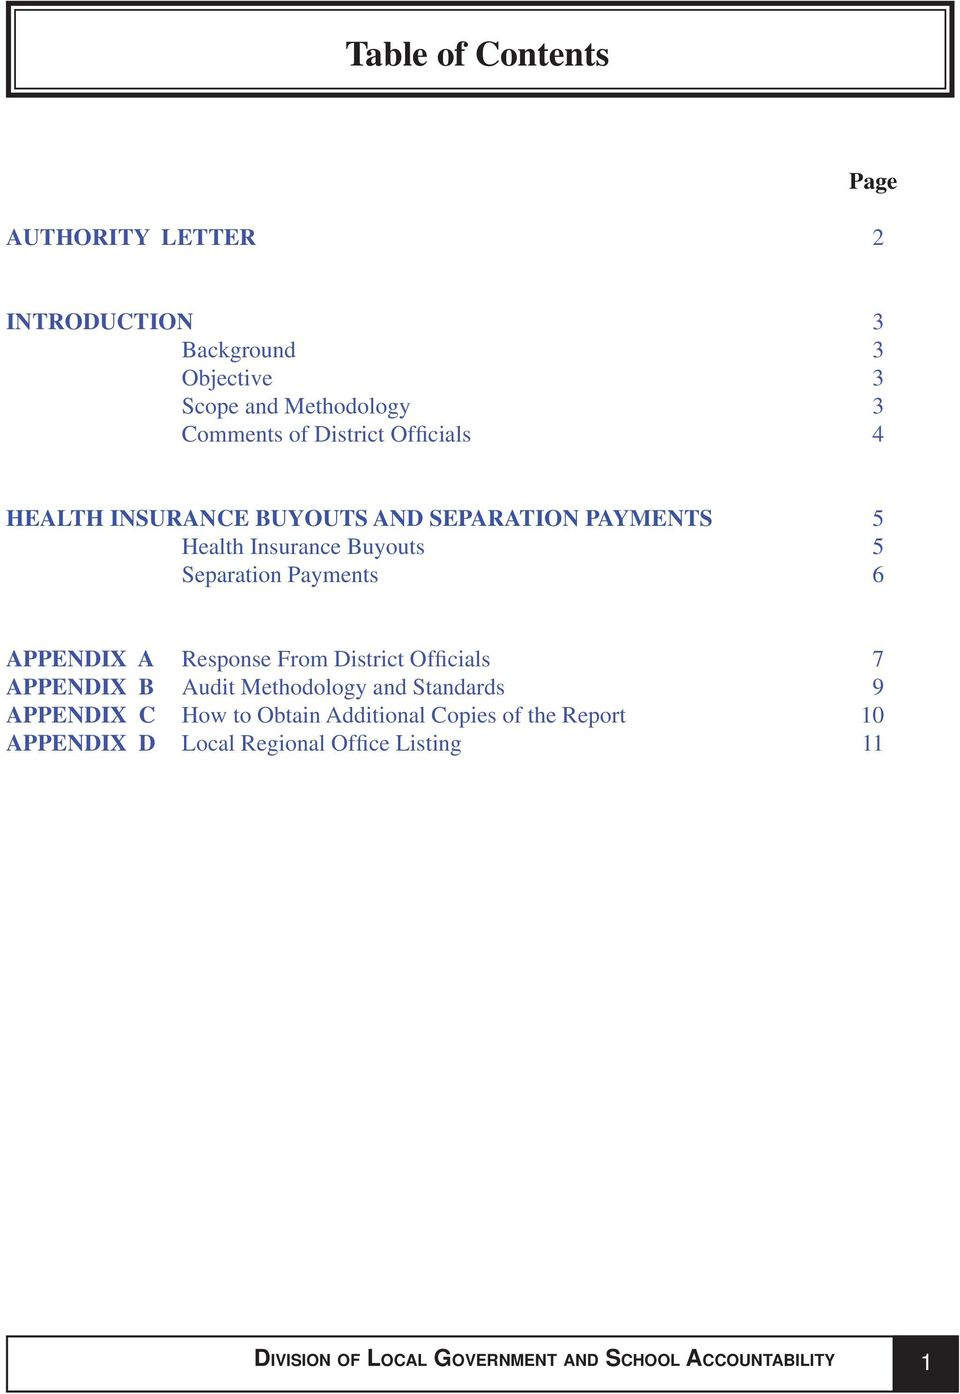 APPENDIX A Response From District Officials 7 APPENDIX B Audit Methodology and Standards 9 APPENDIX C How to Obtain